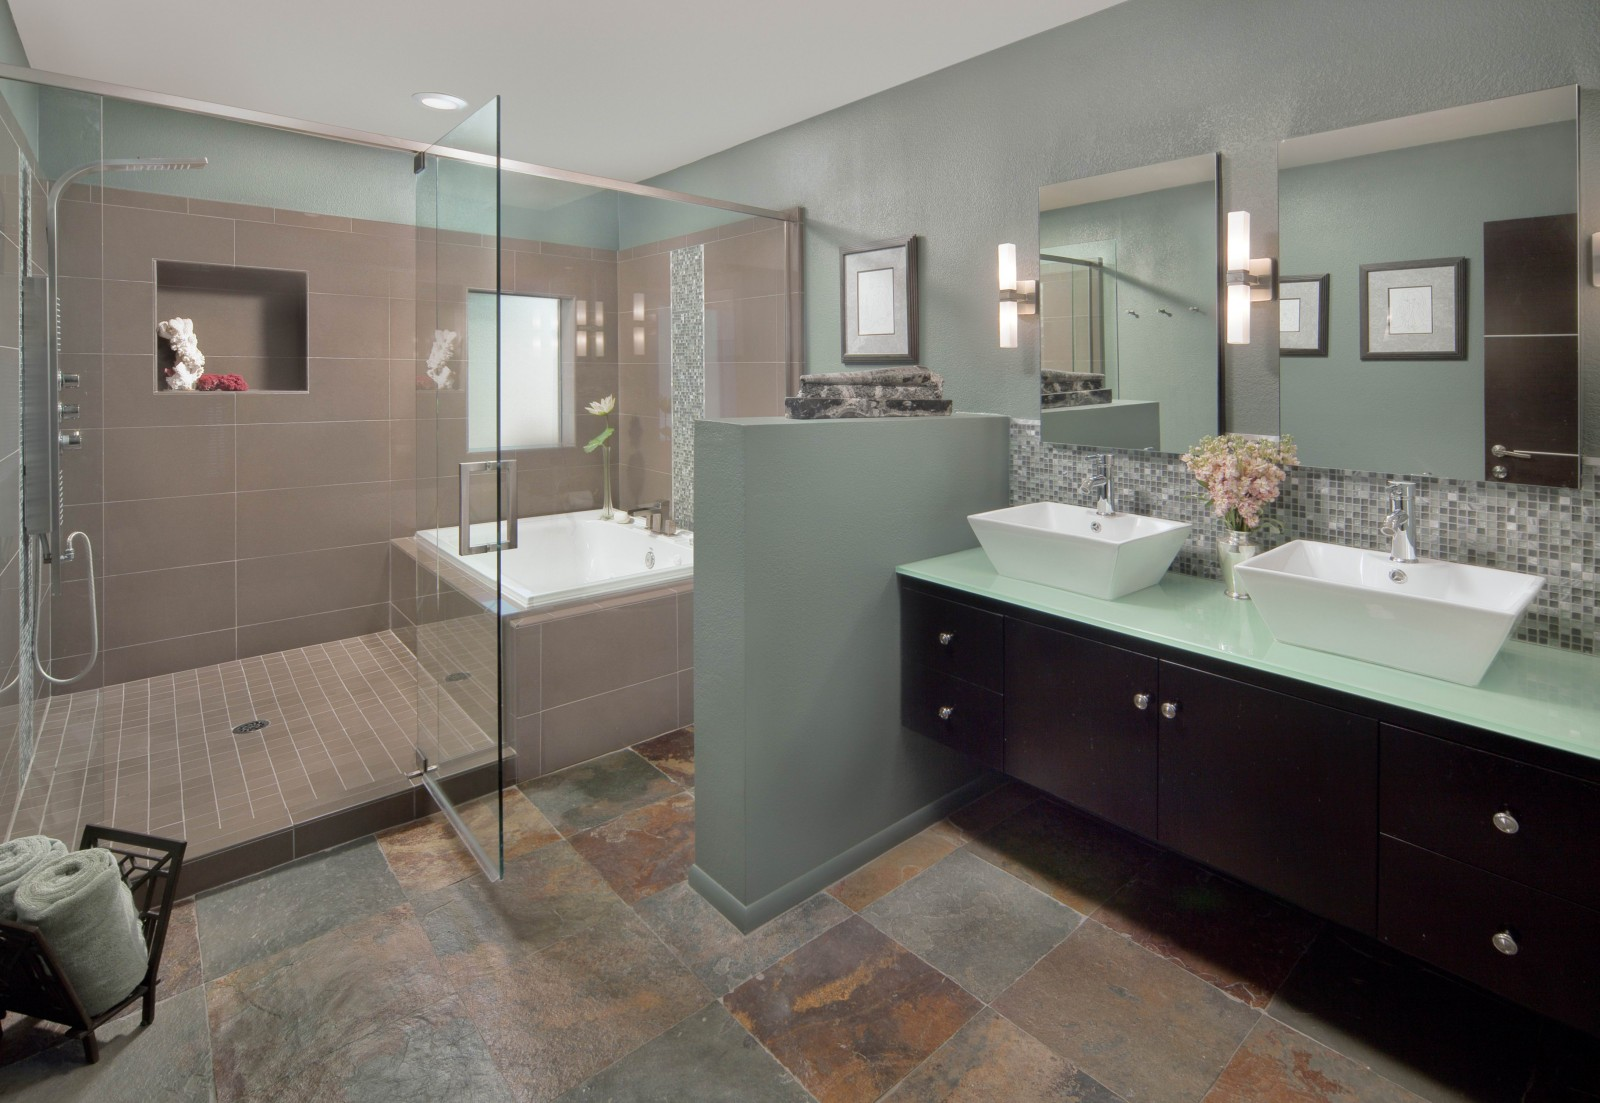 Revamping your master bathroom peter mickus for Bathroom remodeling pictures and ideas